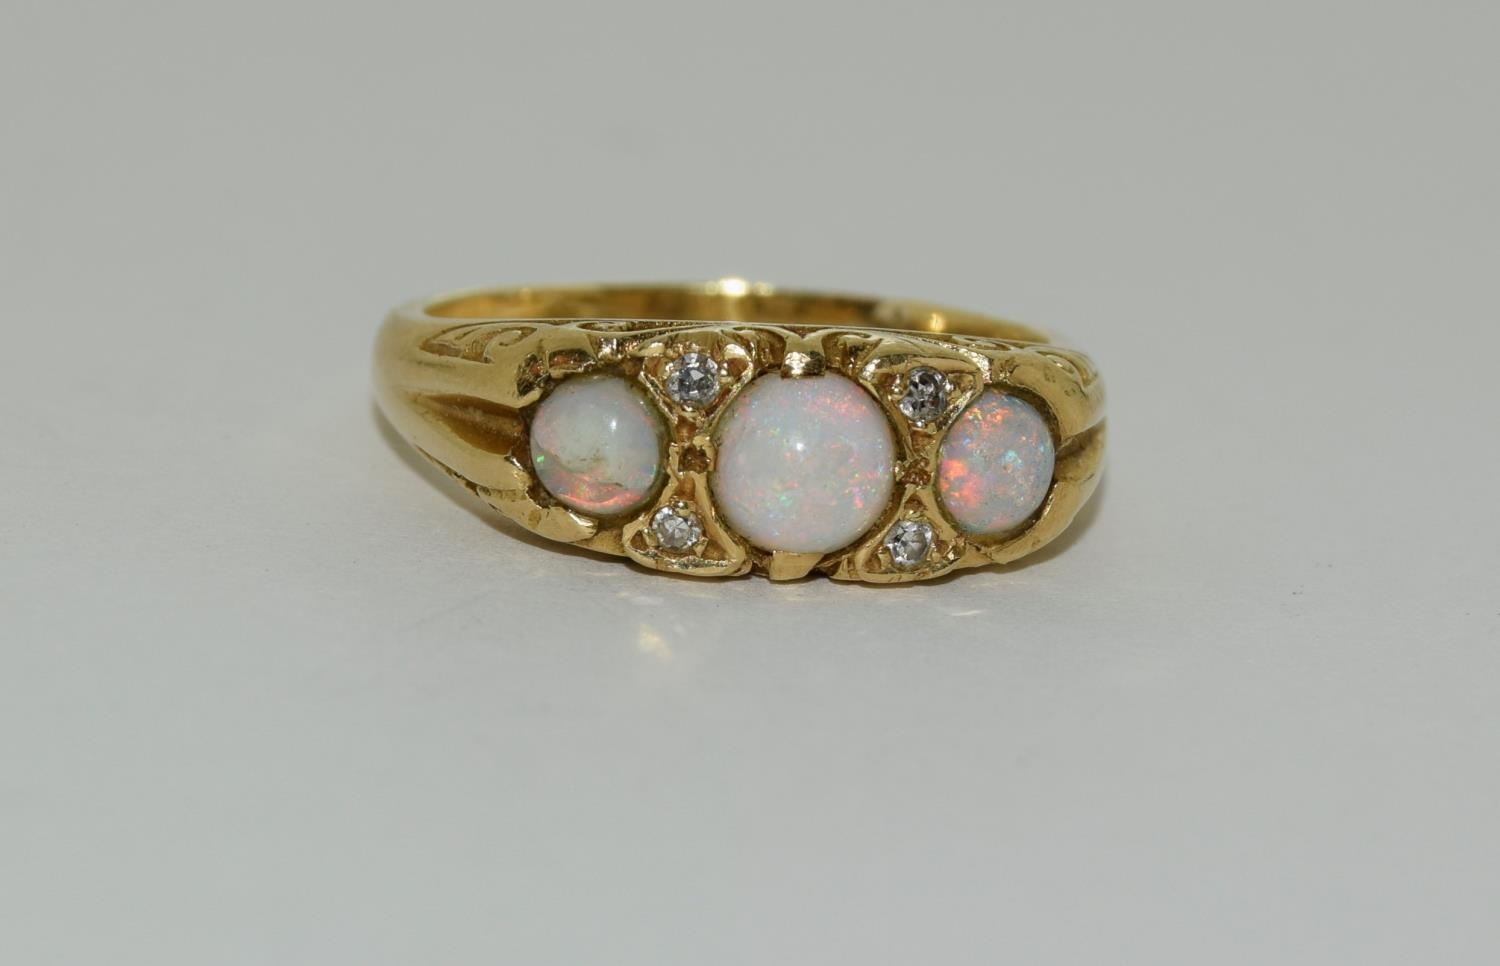 Opal/Diamond 3 stone 18ct gold heavy 6.6g ring, Size P. - Image 6 of 6